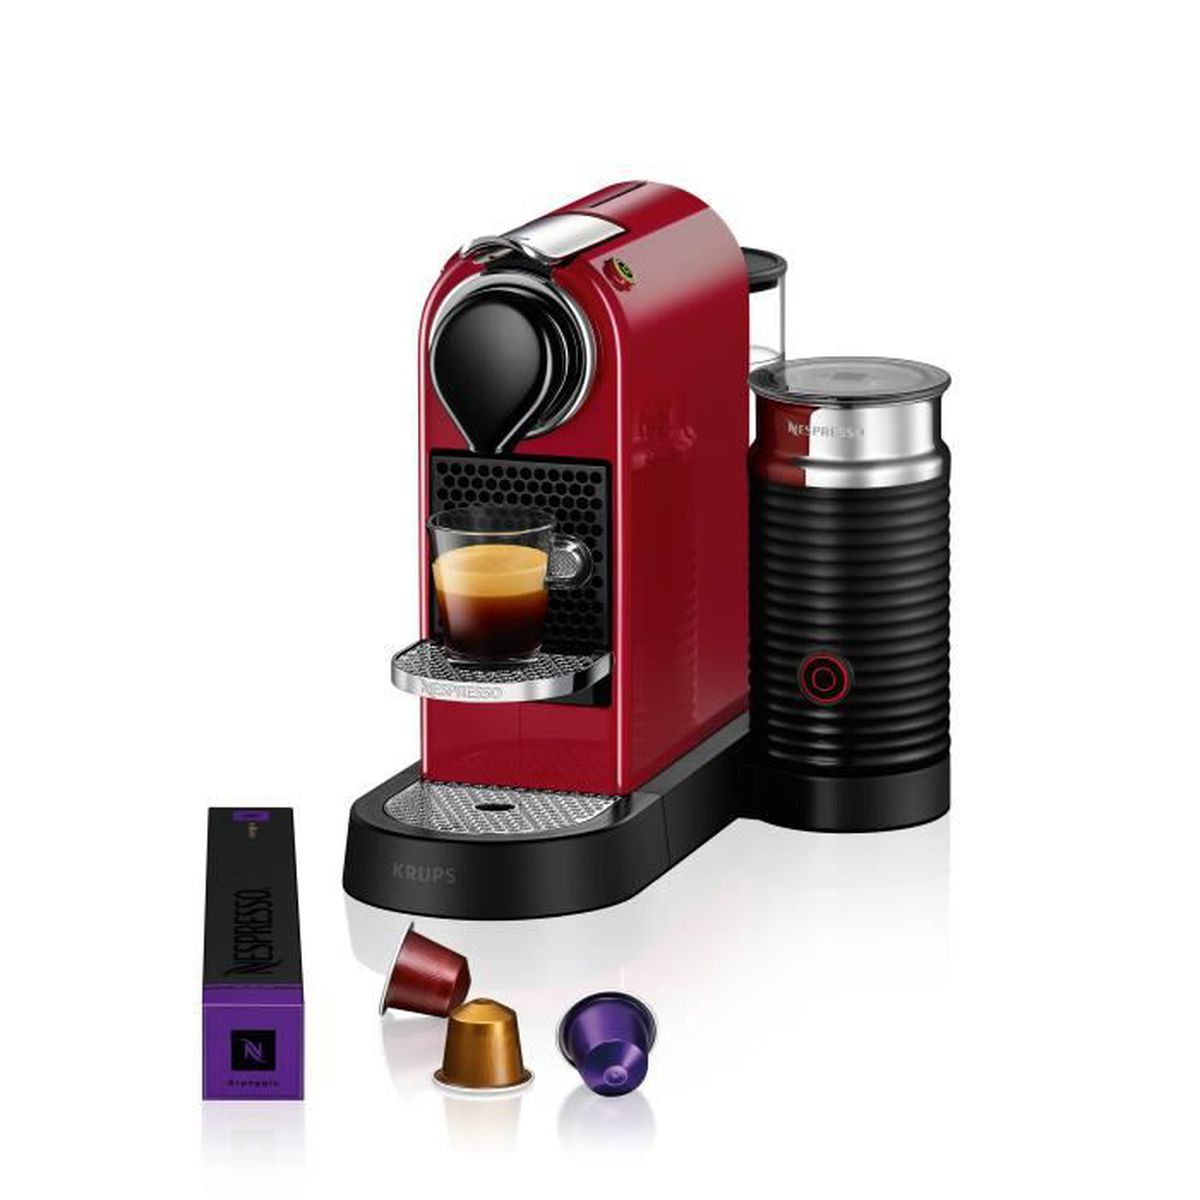 meilleur cafetiere nespresso krups pas cher. Black Bedroom Furniture Sets. Home Design Ideas